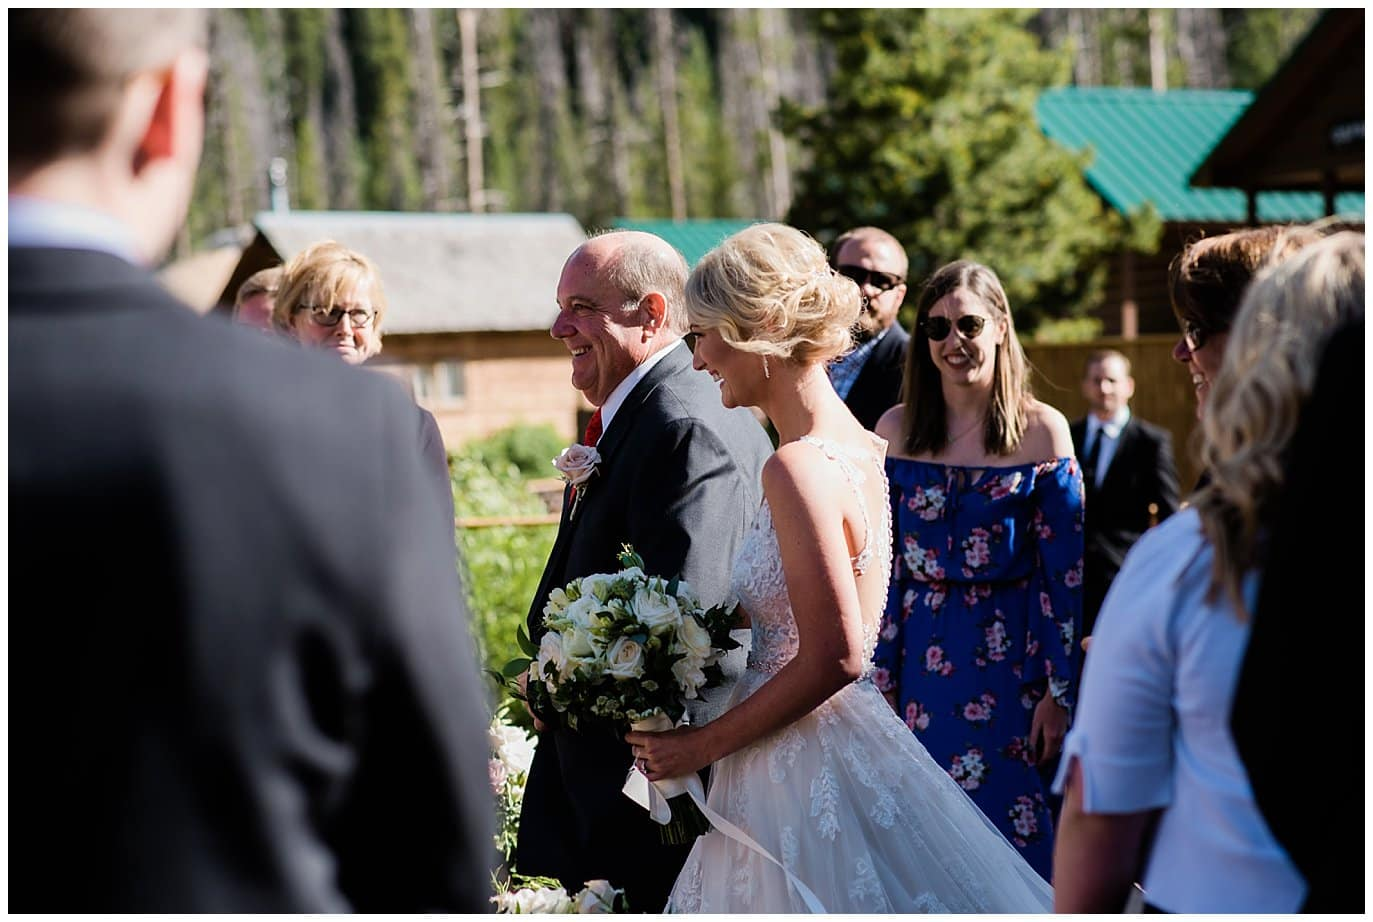 bride walking down aisle at at Piney River Ranch wedding by Beaver wedding photographer Jennie Crate, Photographer